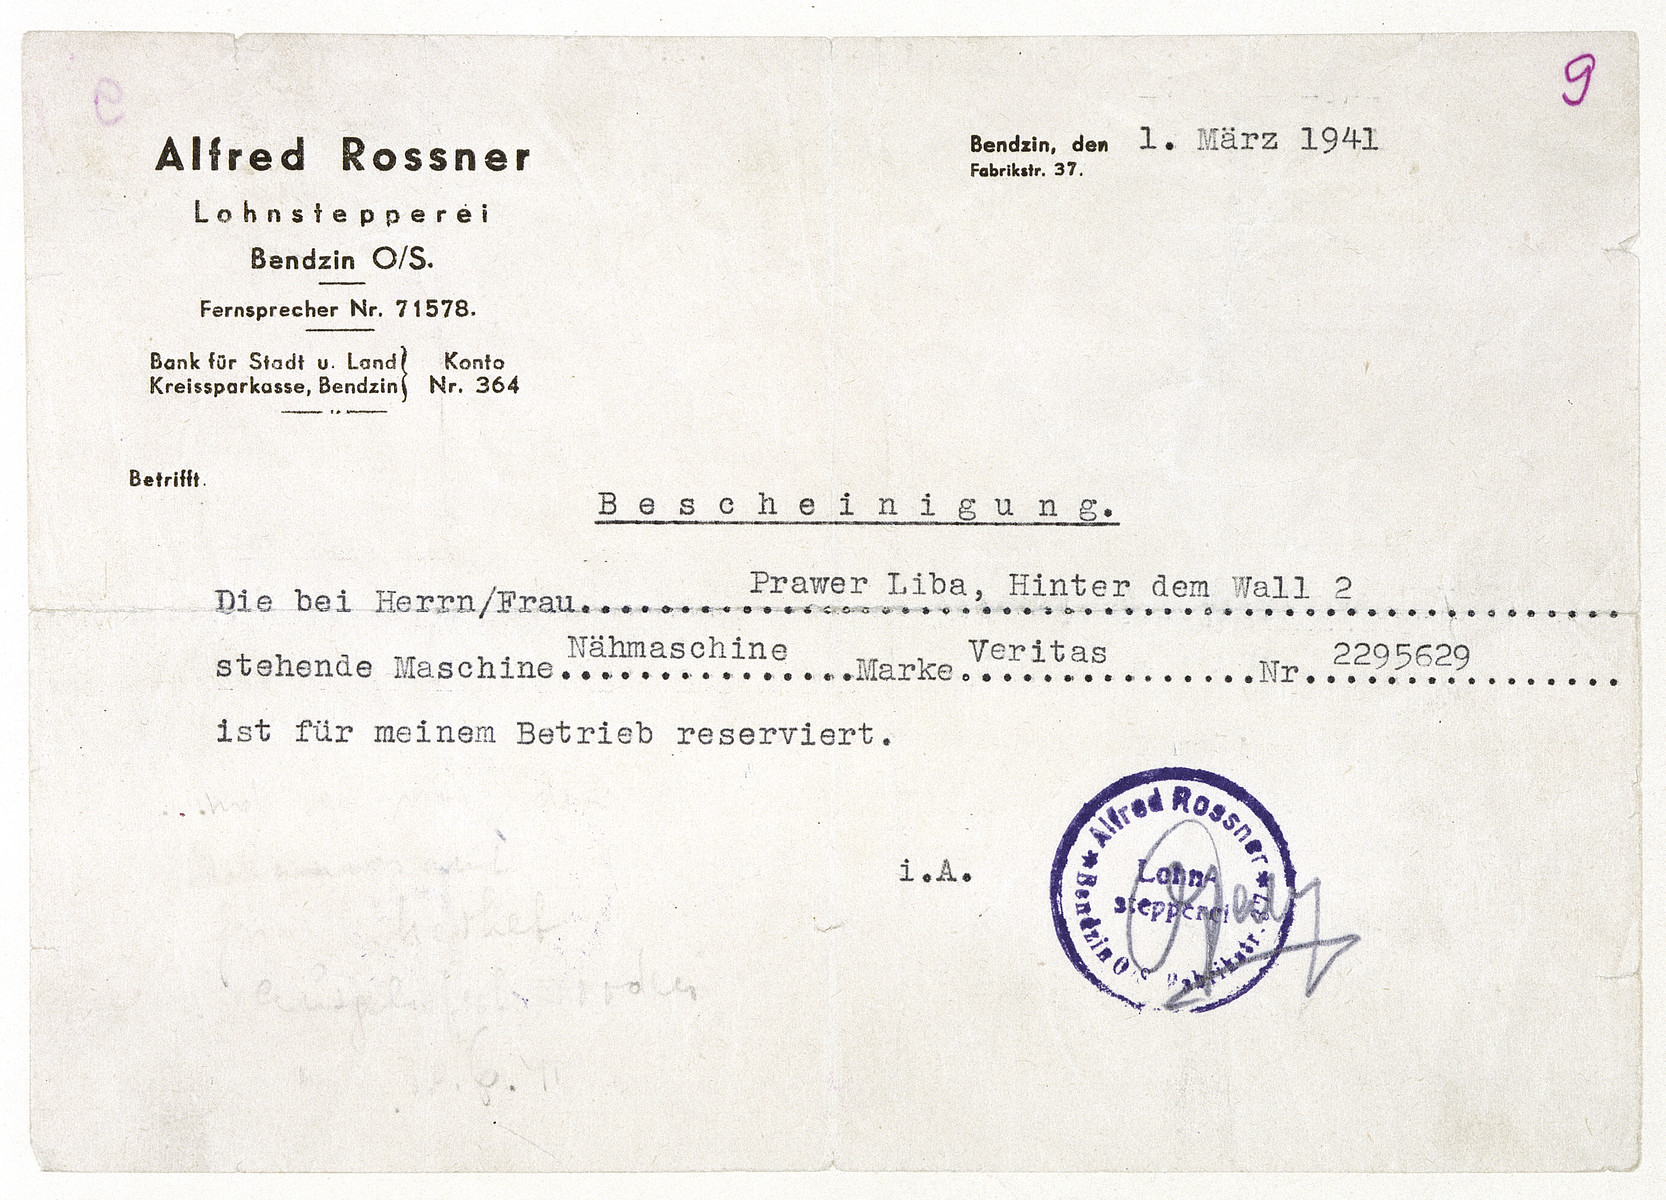 Certificate issued by Alfred Rossner, the owner of clothing workshops, stating that the sewing machine located in the apartment of Luba Prawer has been reserved for use by the Rossner workshops.